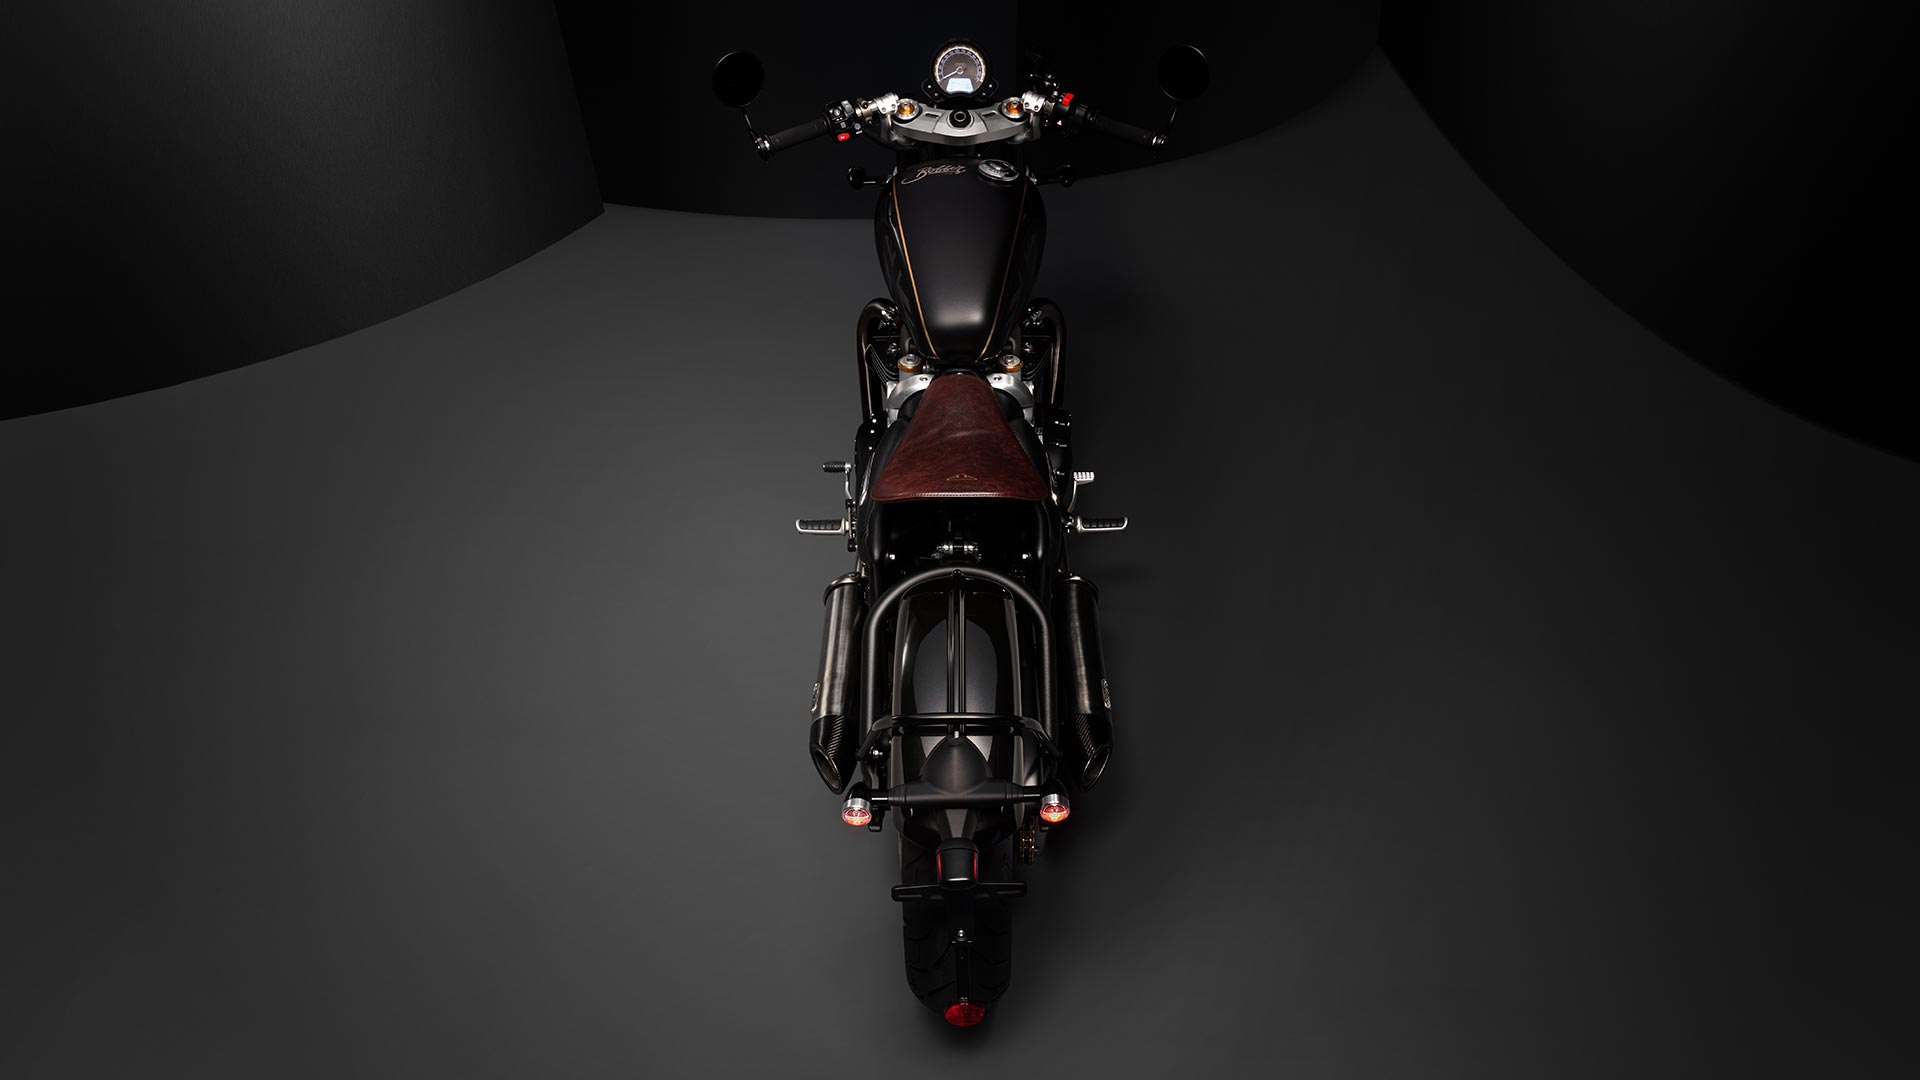 Rear shot of the Triumph Bobber TFC